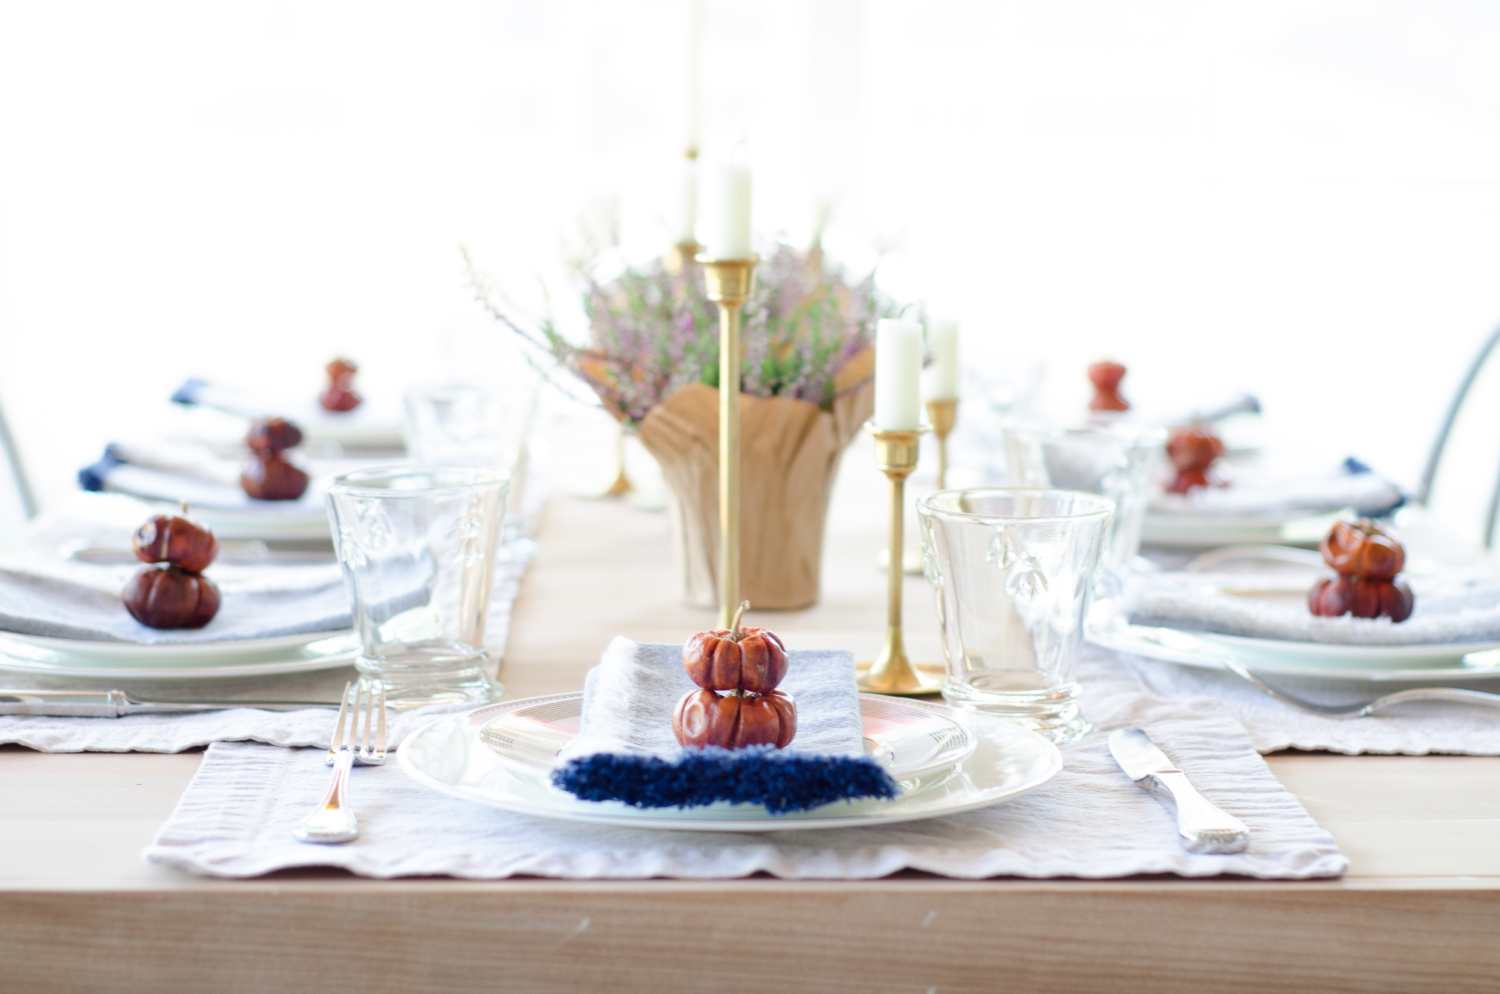 Fall table setting plus ten simple, easy fall decorating ideas you can bring into your home this season for perfect, subtle fall charm.